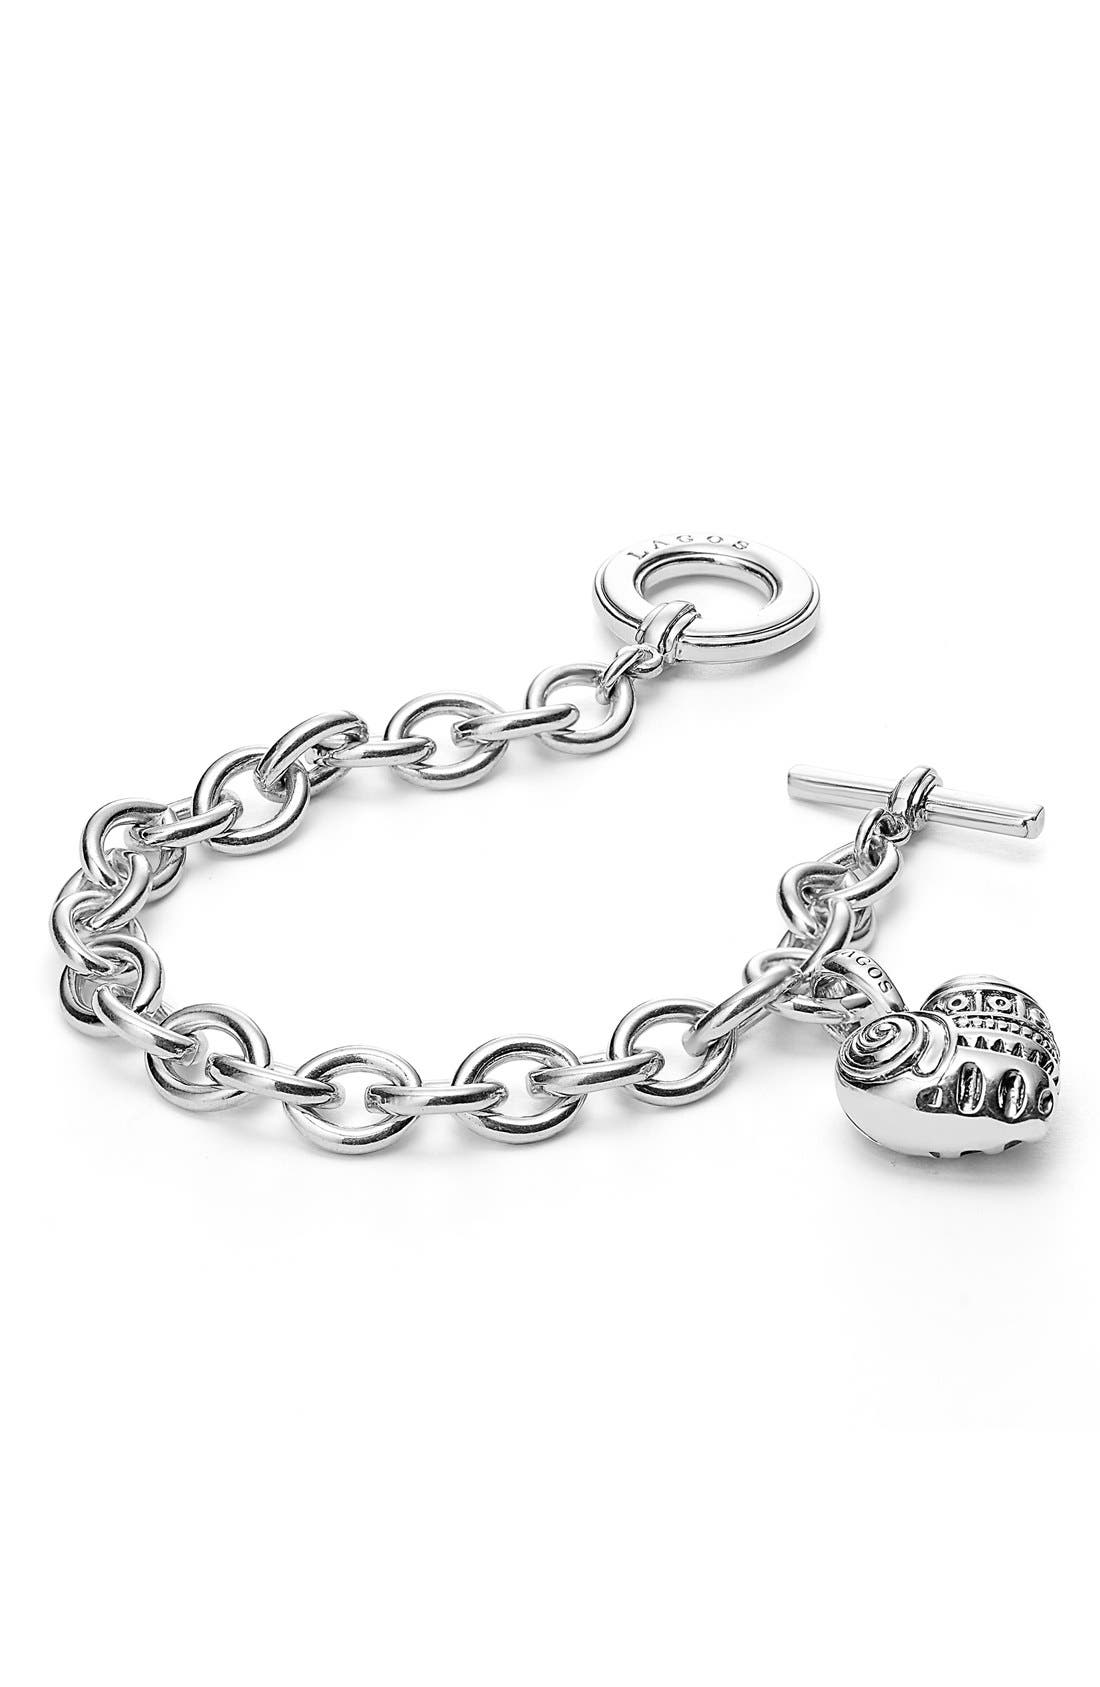 'Hearts of LAGOS' Charm Bracelet,                             Alternate thumbnail 2, color,                             HEART OF PHILADELPHIA